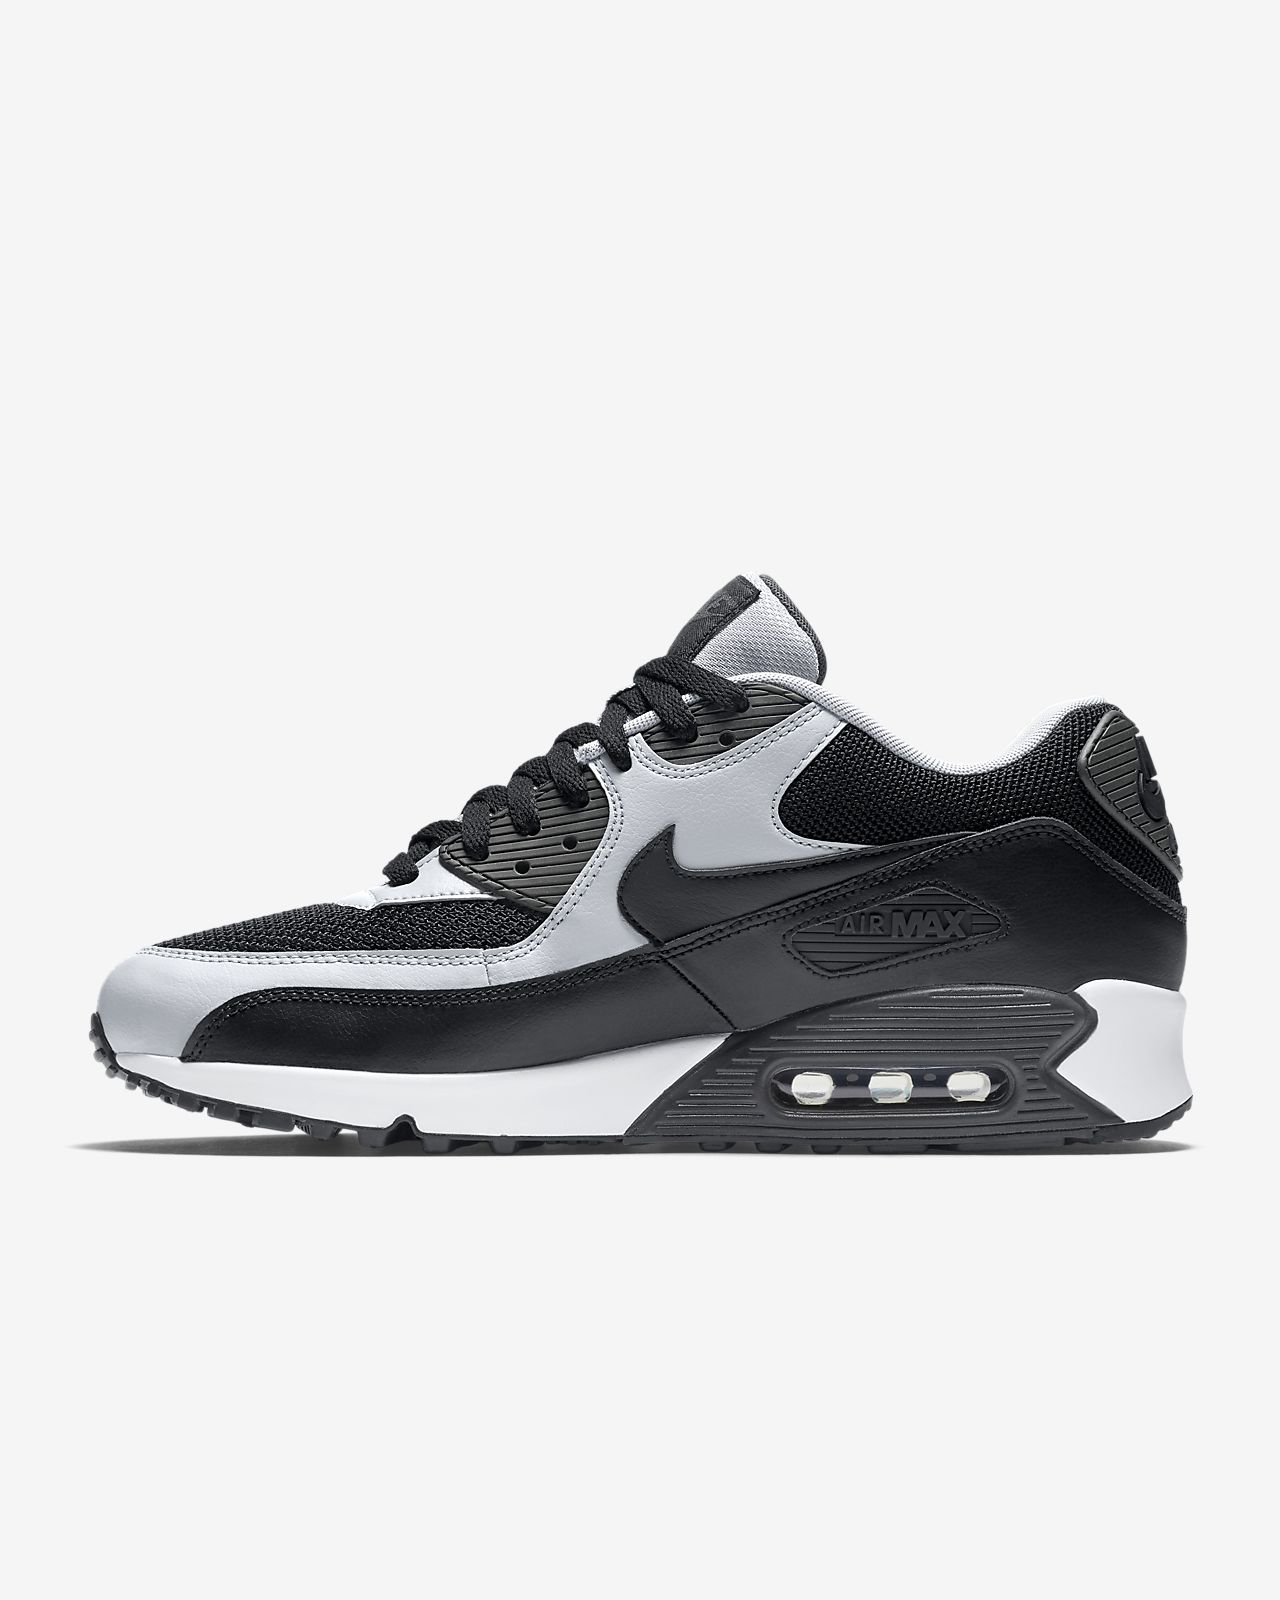 reputable site cbf4f c8a87 Nike Air Max 90 Essential